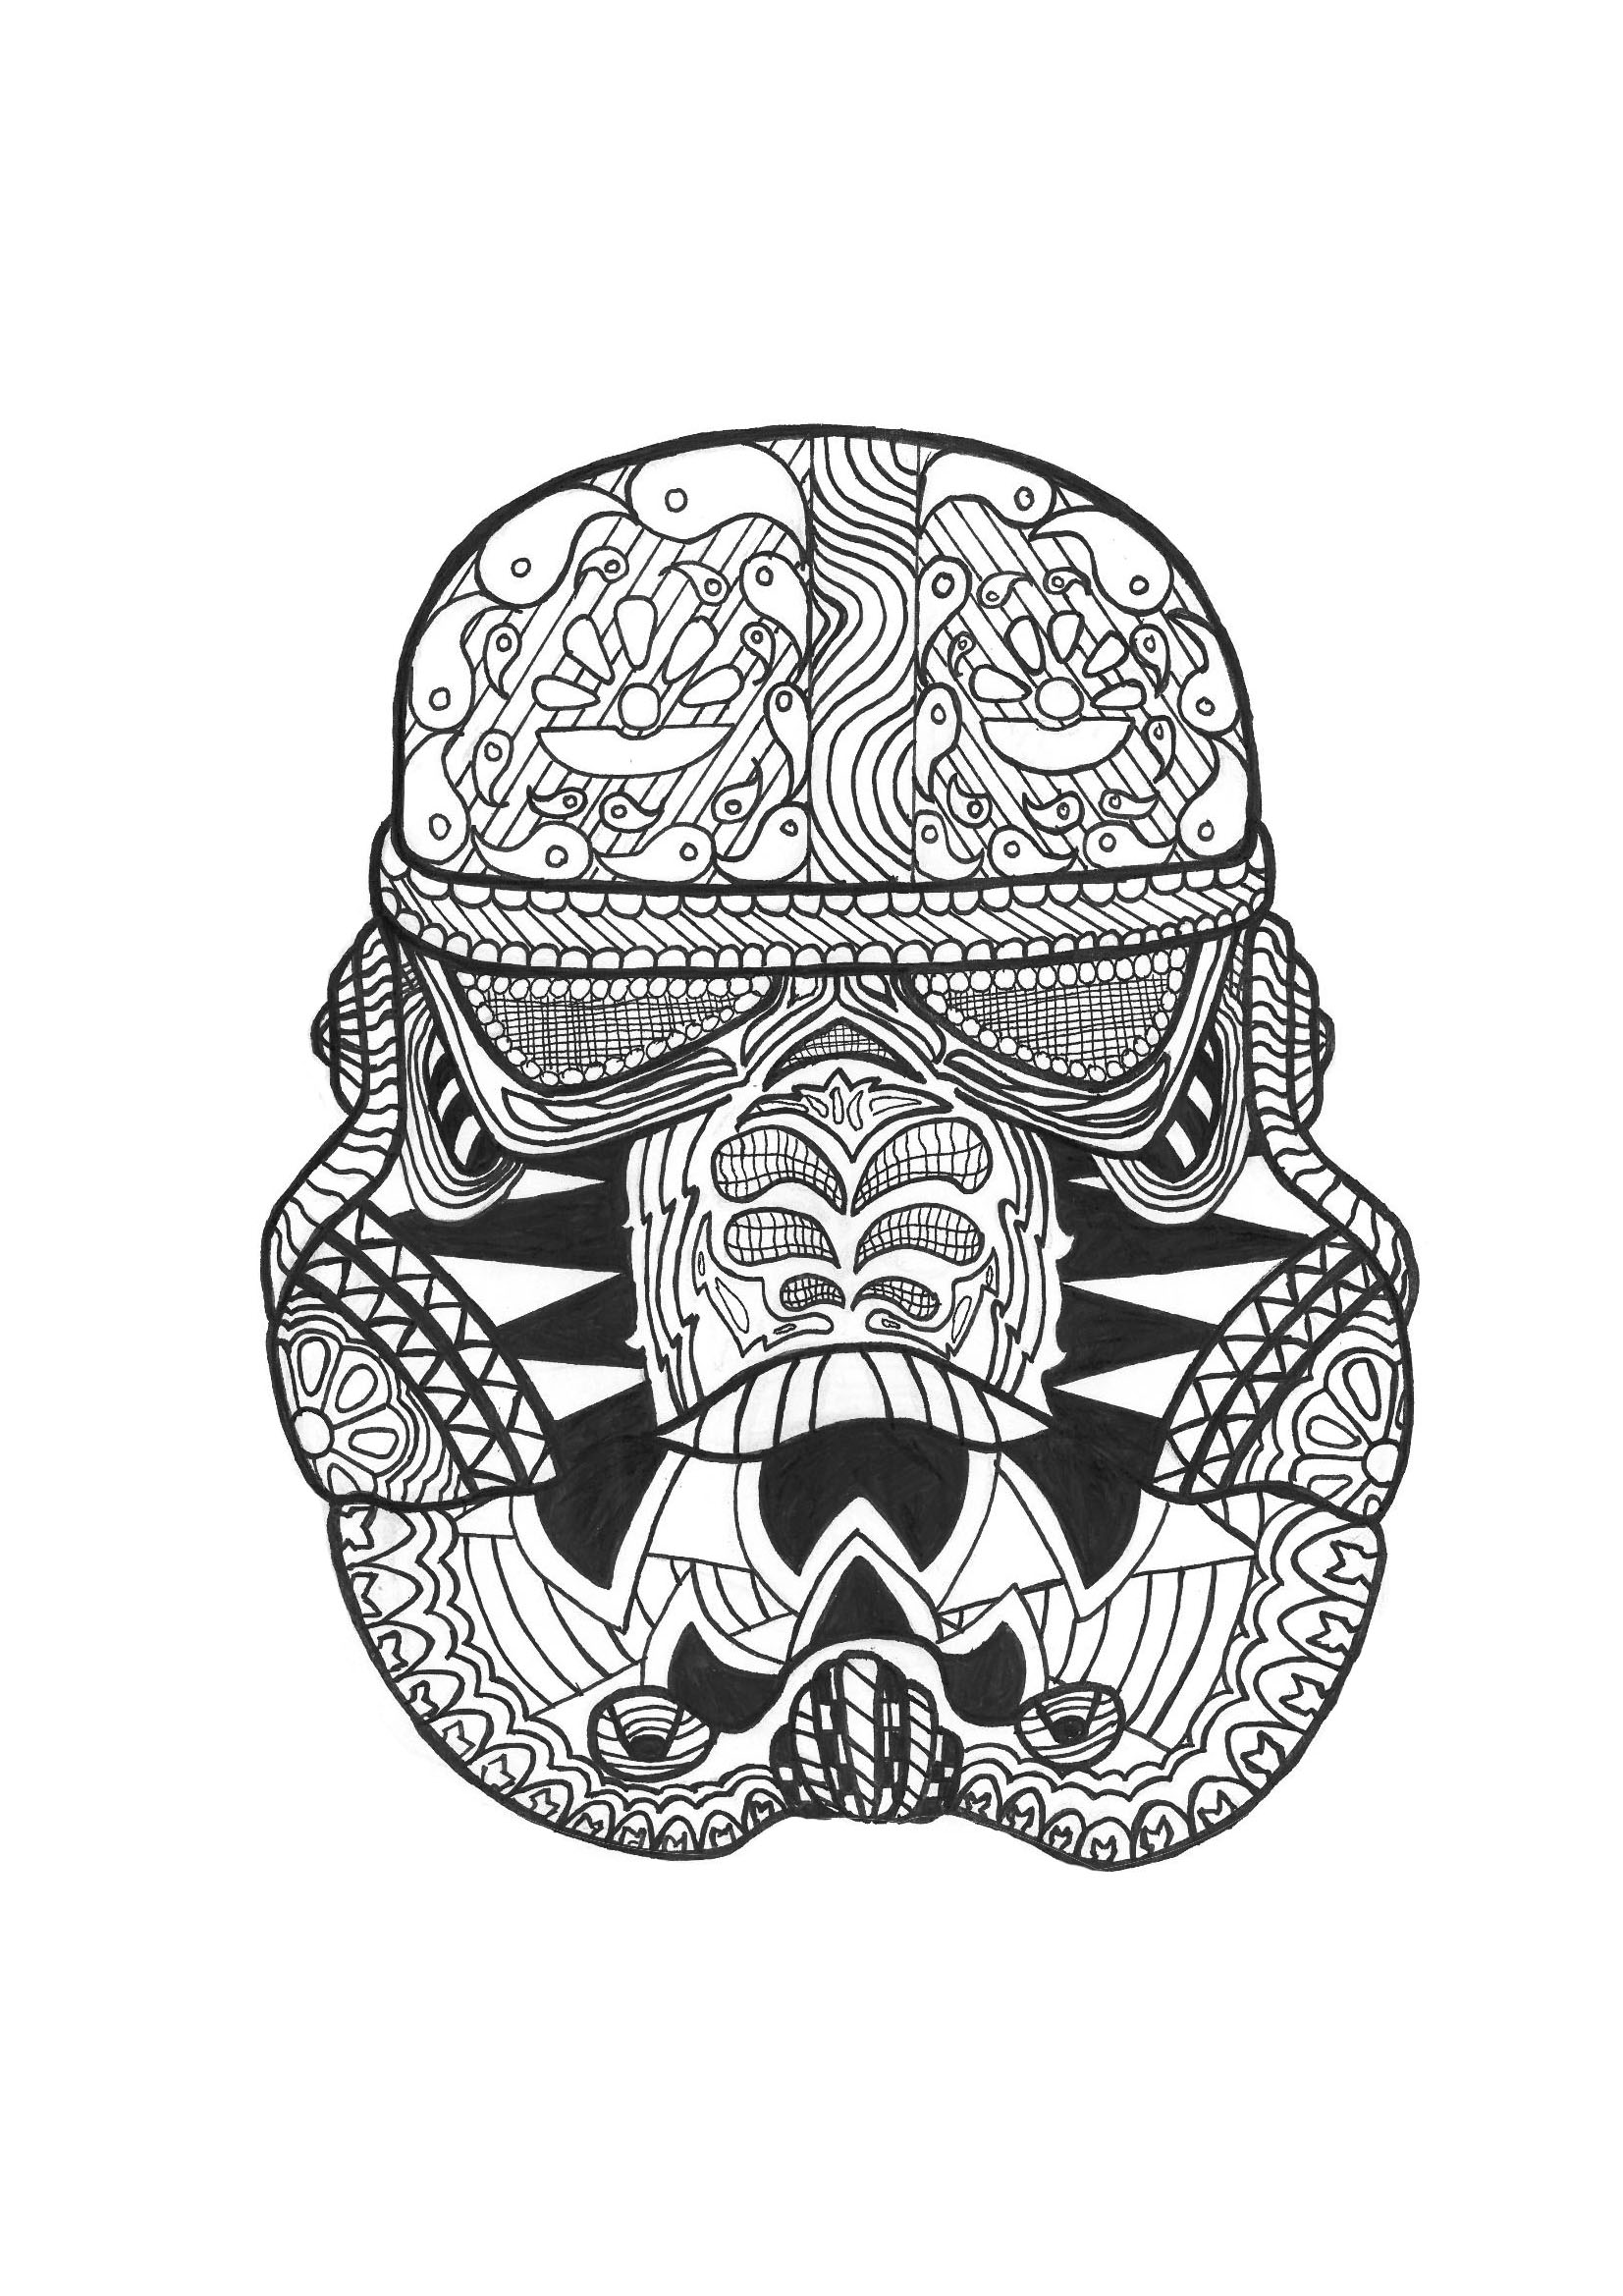 Coloriage Anti Stress Mode.Zen Stormtrooper Anti Stress Art Therapie Coloriages